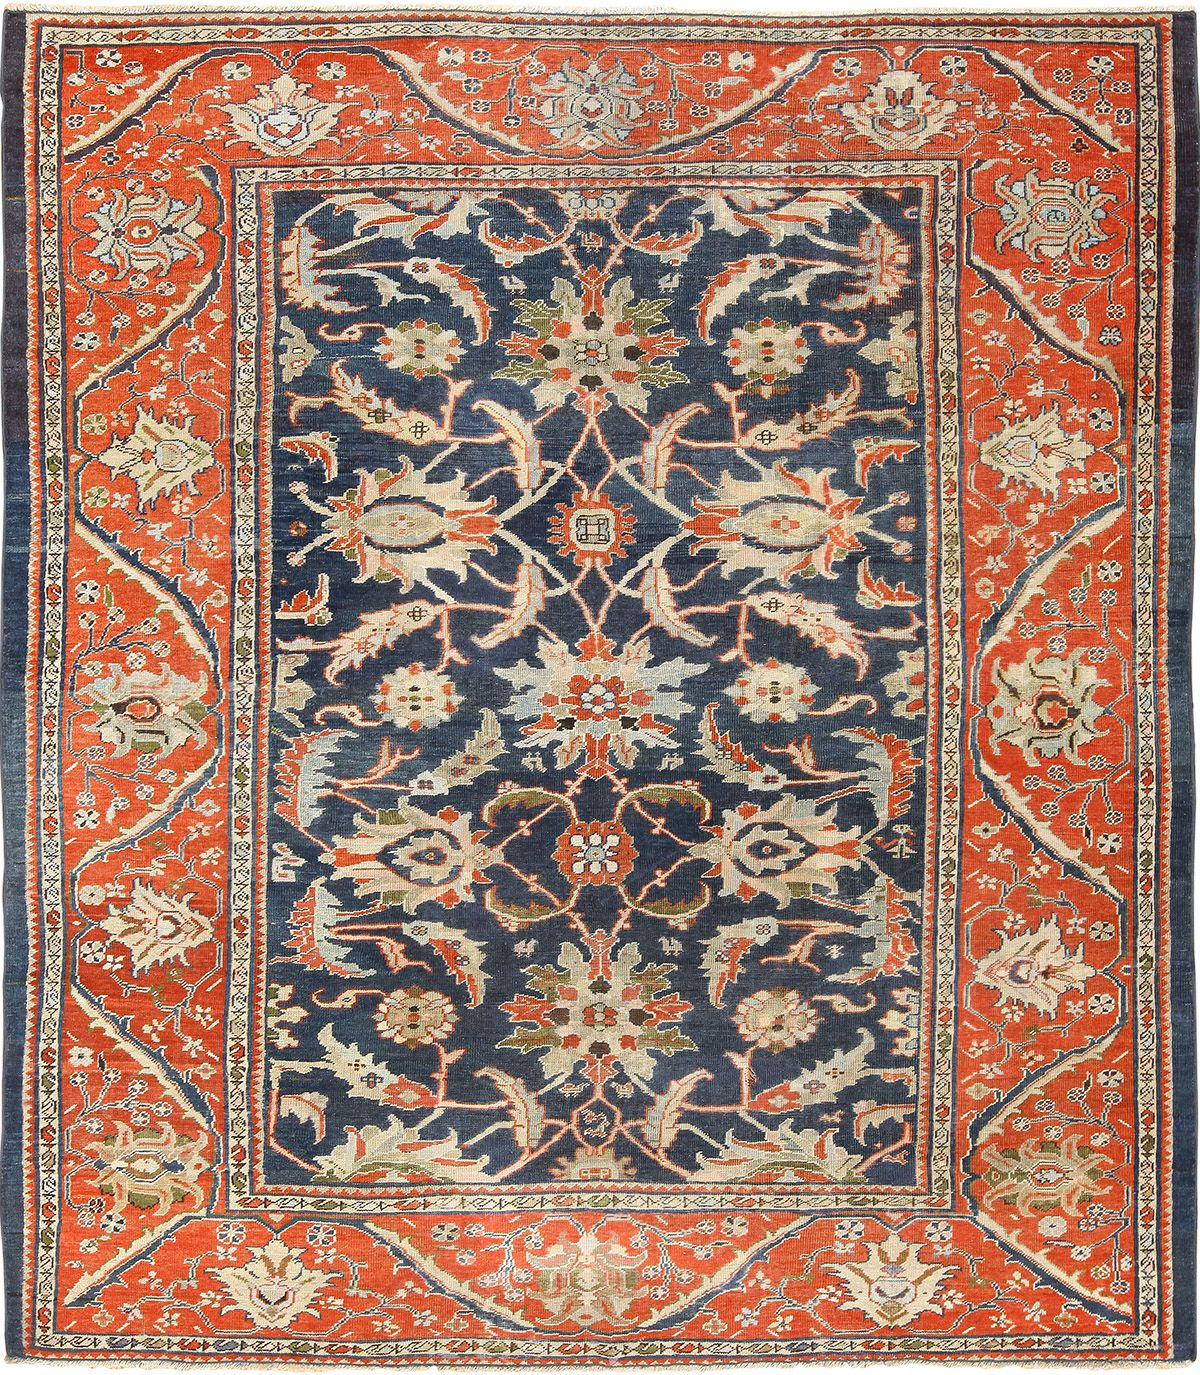 AR26. Antique Persian Sultanabad 8-5 x 9-10